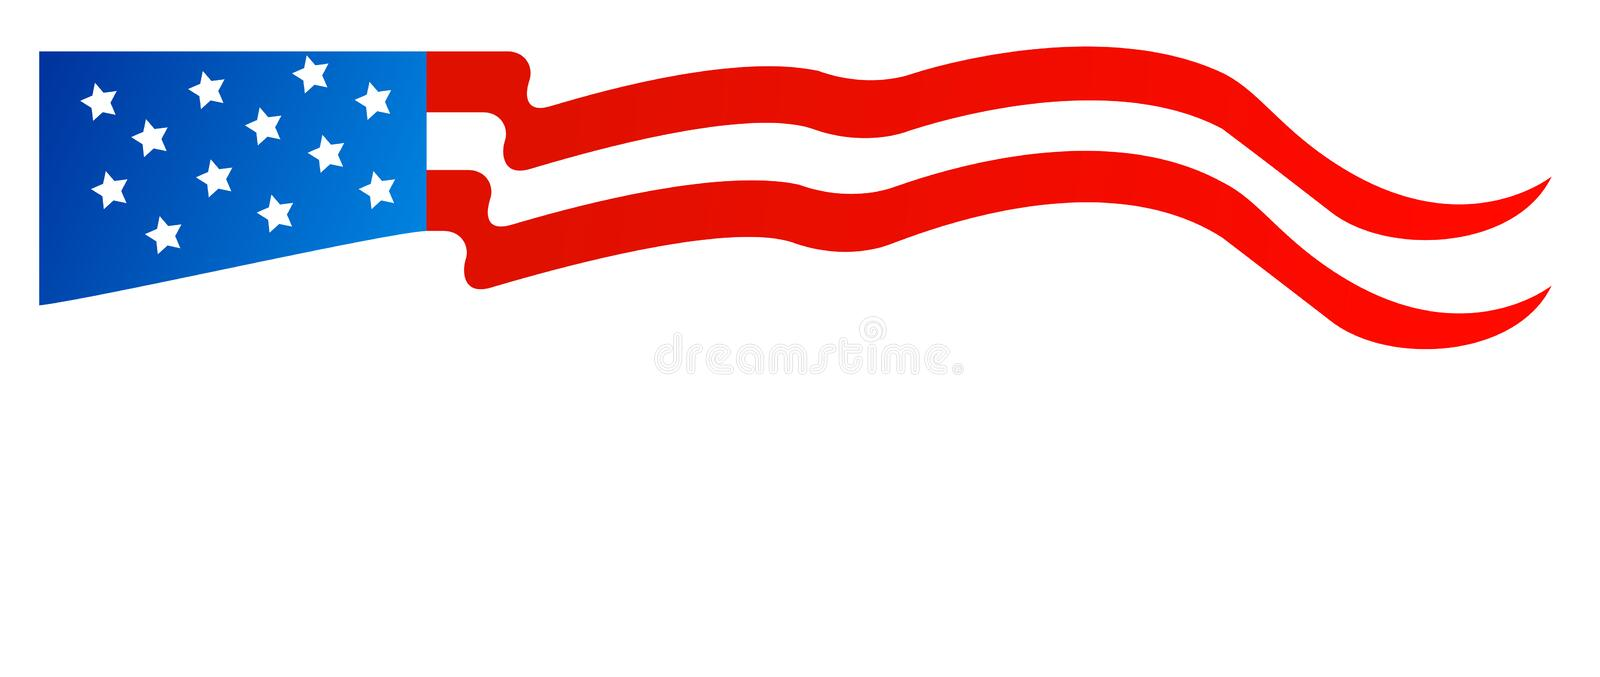 American flag decoration top. Vector illustration of flag of the united states of america, small and wide for border decorations or small rows on editorials and